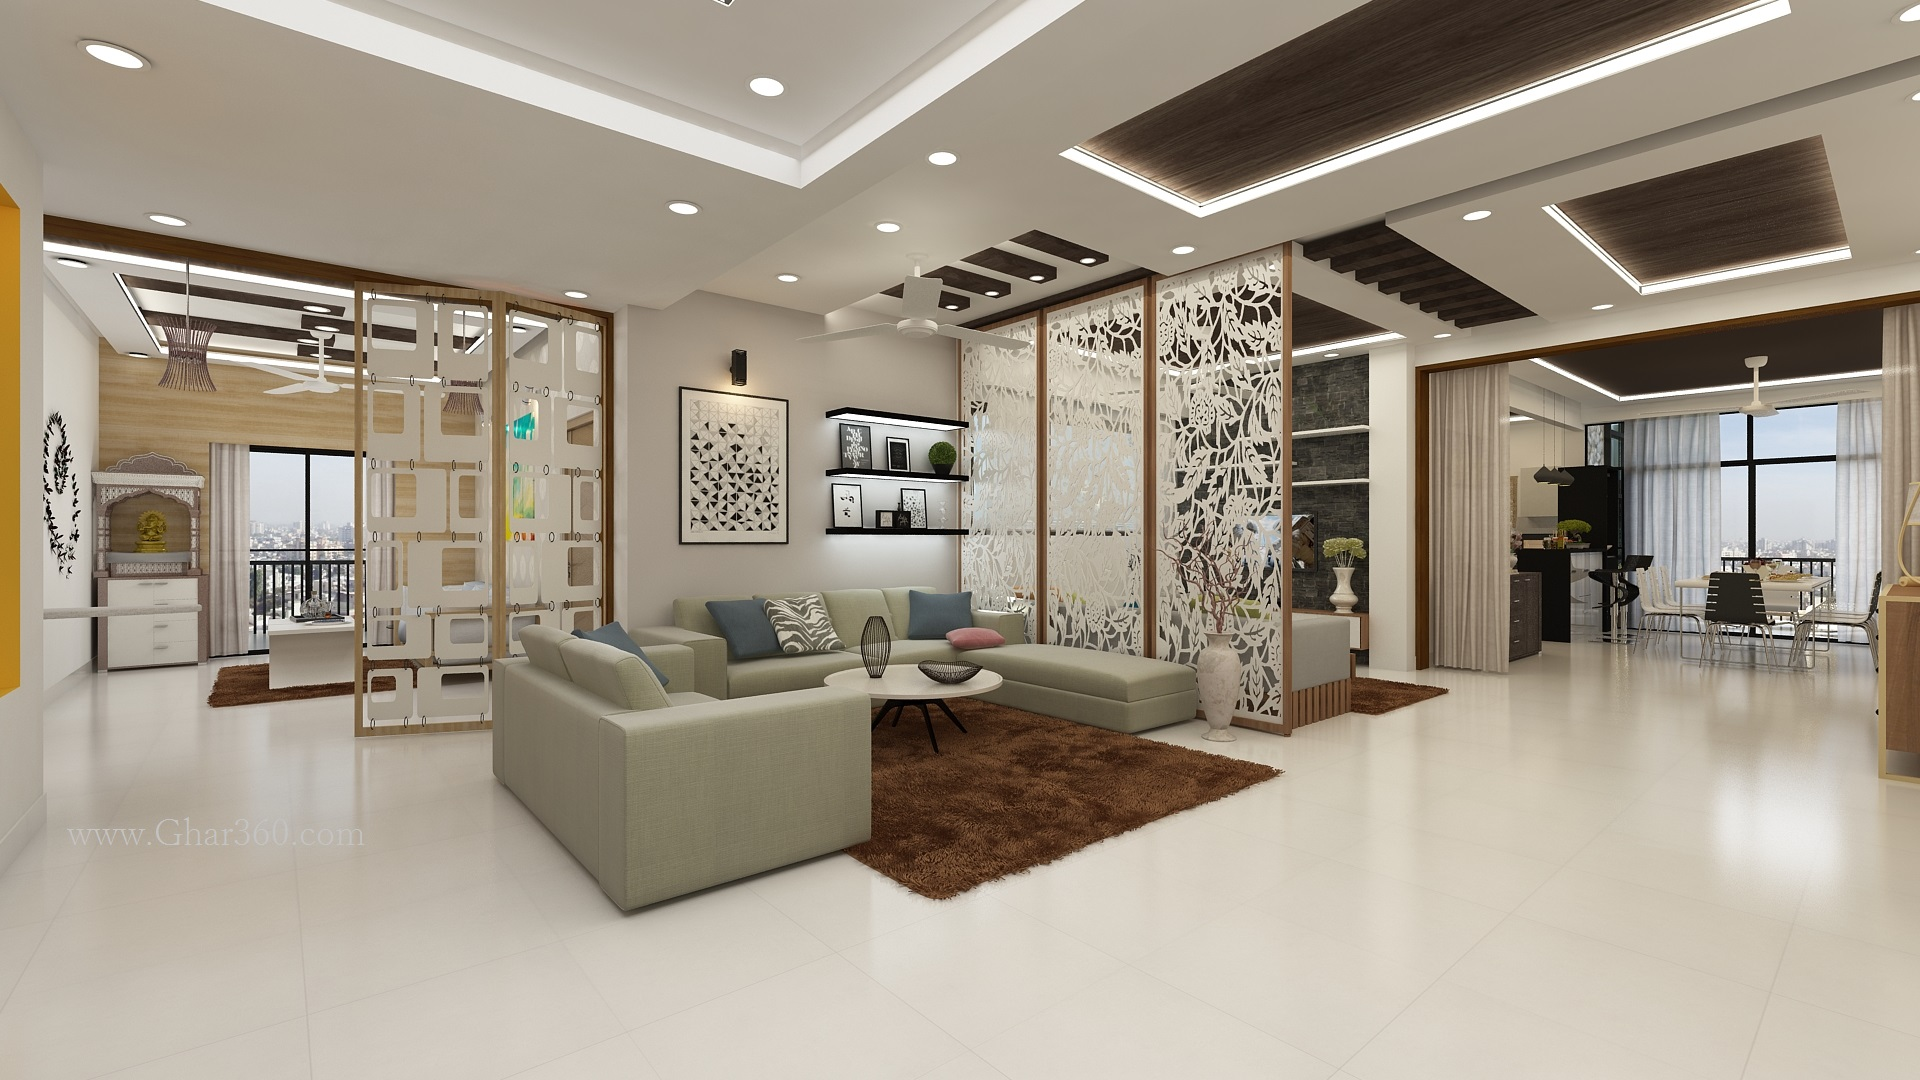 Luxury interior design by ghar360 best interior design for Best interior design